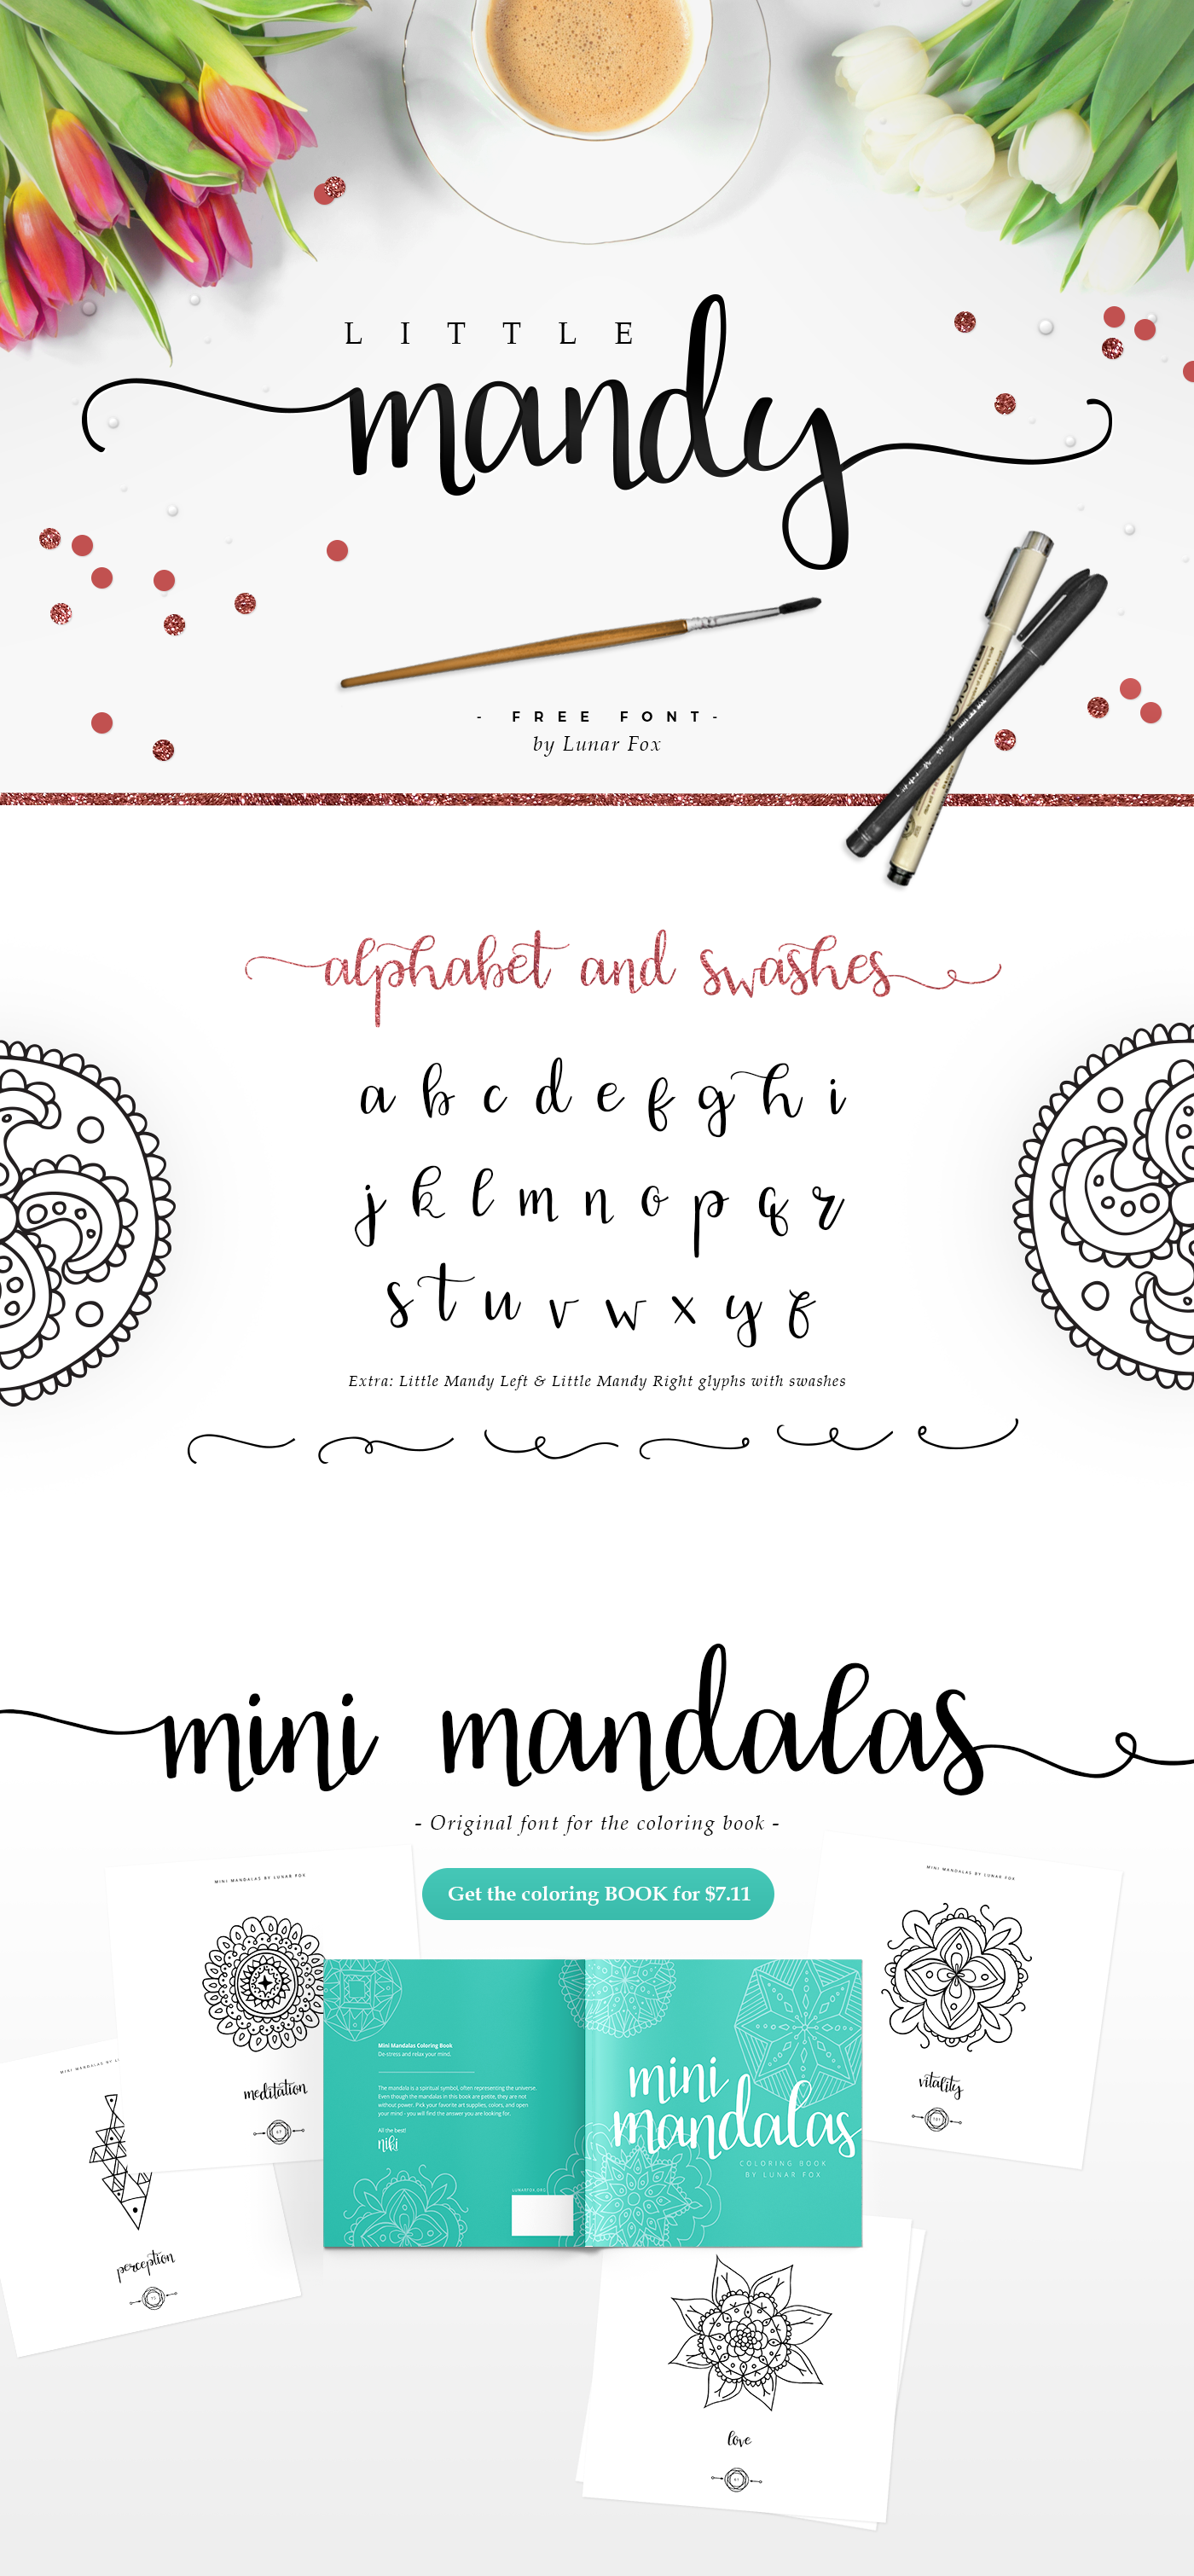 The coloring book project free download - Some People Asked For The Font That Was Used In The Coloring Book Mini Mandalas So They Could Use It In Their Projects Now We Are Publishing The Font And